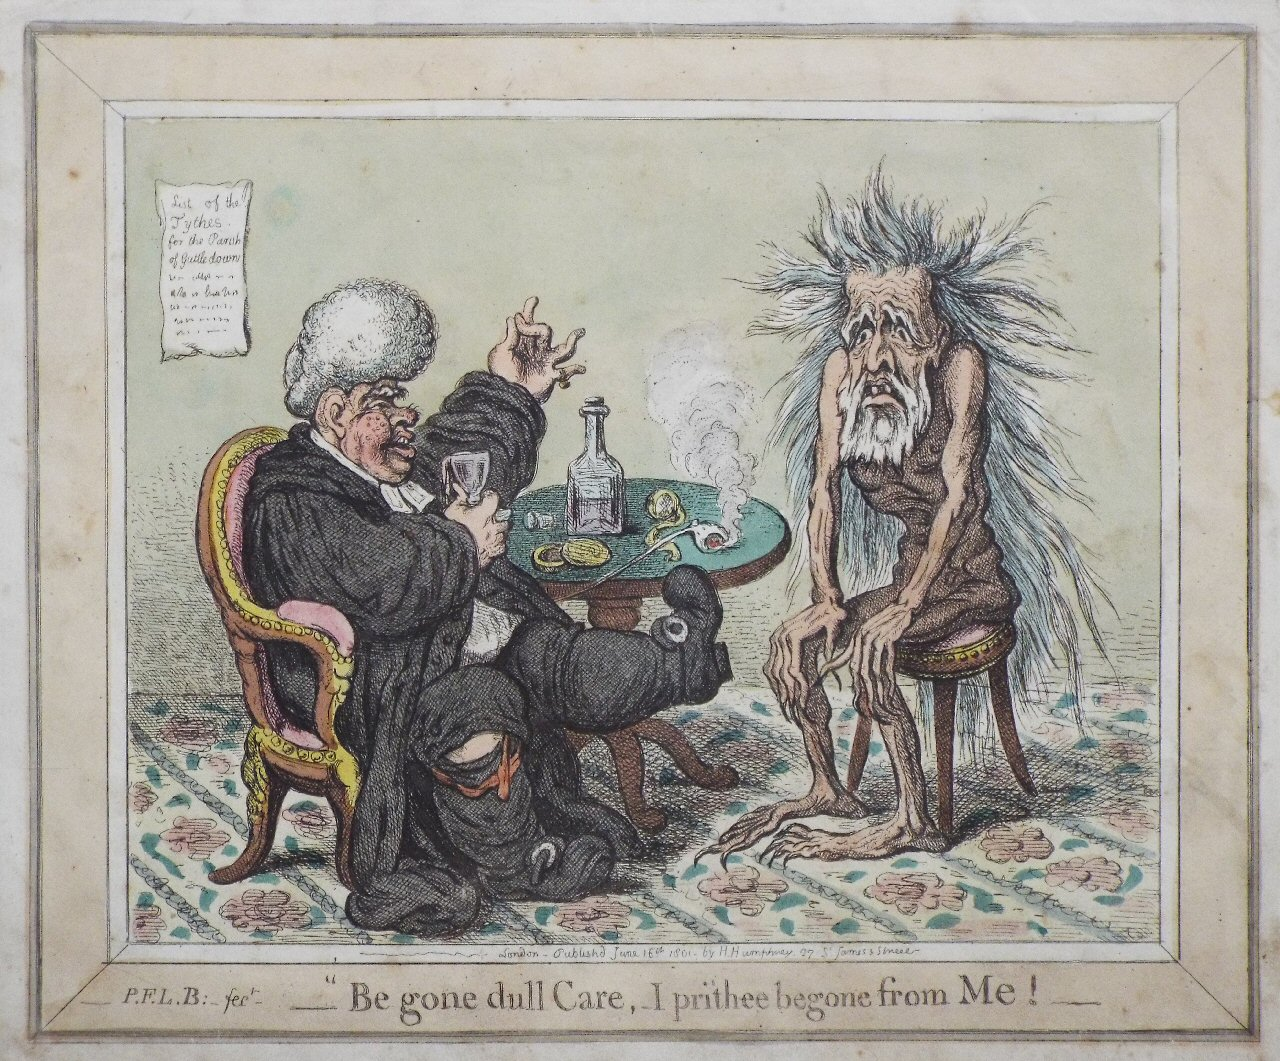 Etching - Be gone dull Care, I prithee begone from Me ! - Gillray